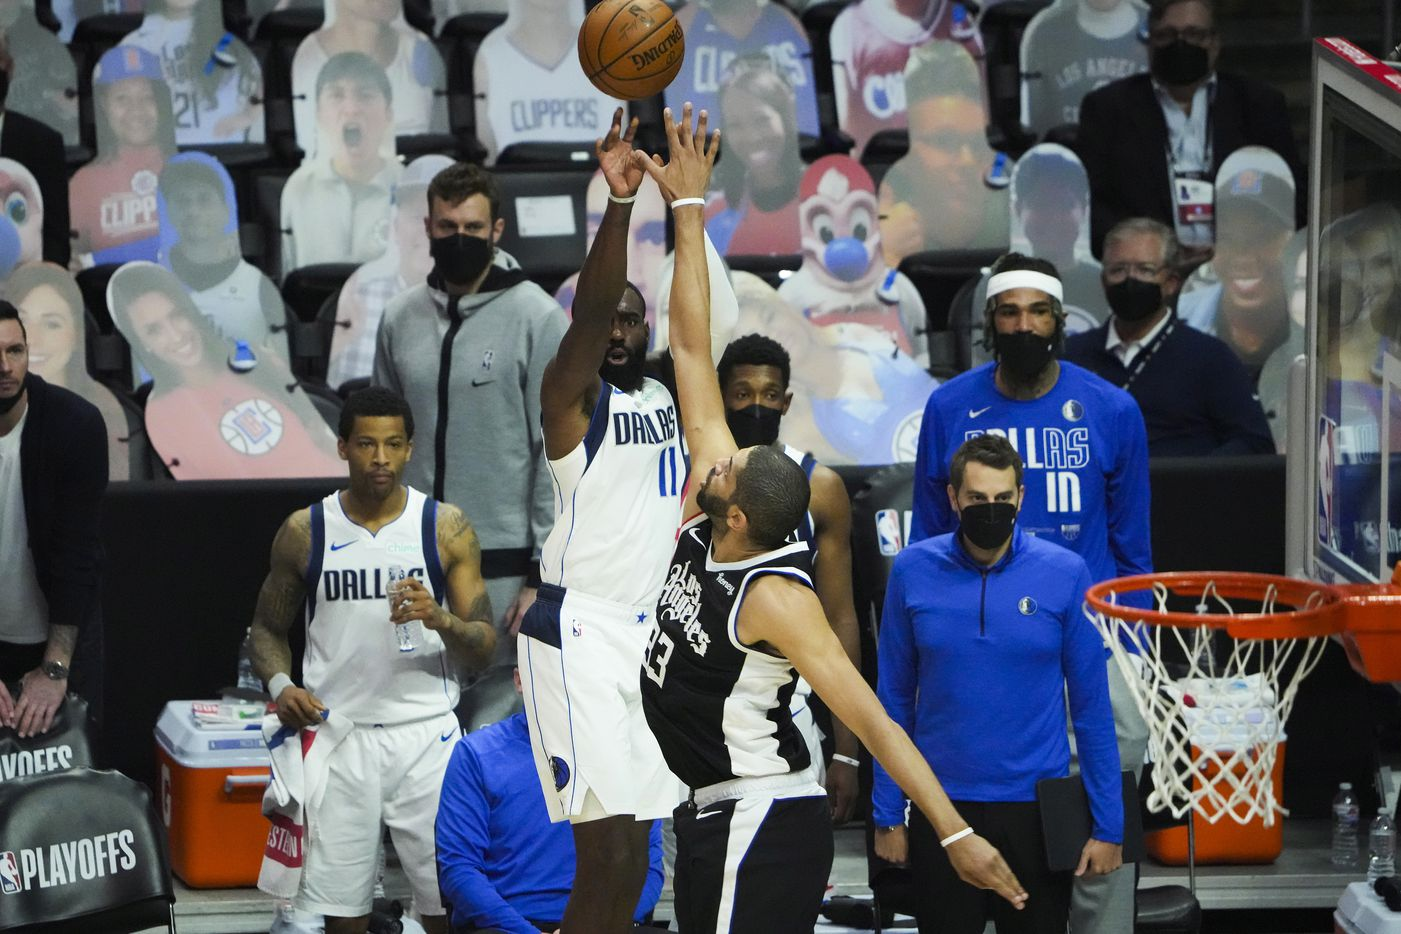 Dallas Mavericks forward Tim Hardaway Jr. (11) shoots a 3-pointer over LA Clippers forward Nicolas Batum (33) during the second quarter of Game 7 of an NBA playoff series at the Staples Center on Sunday, June 6, 2021, in Los Angeles.